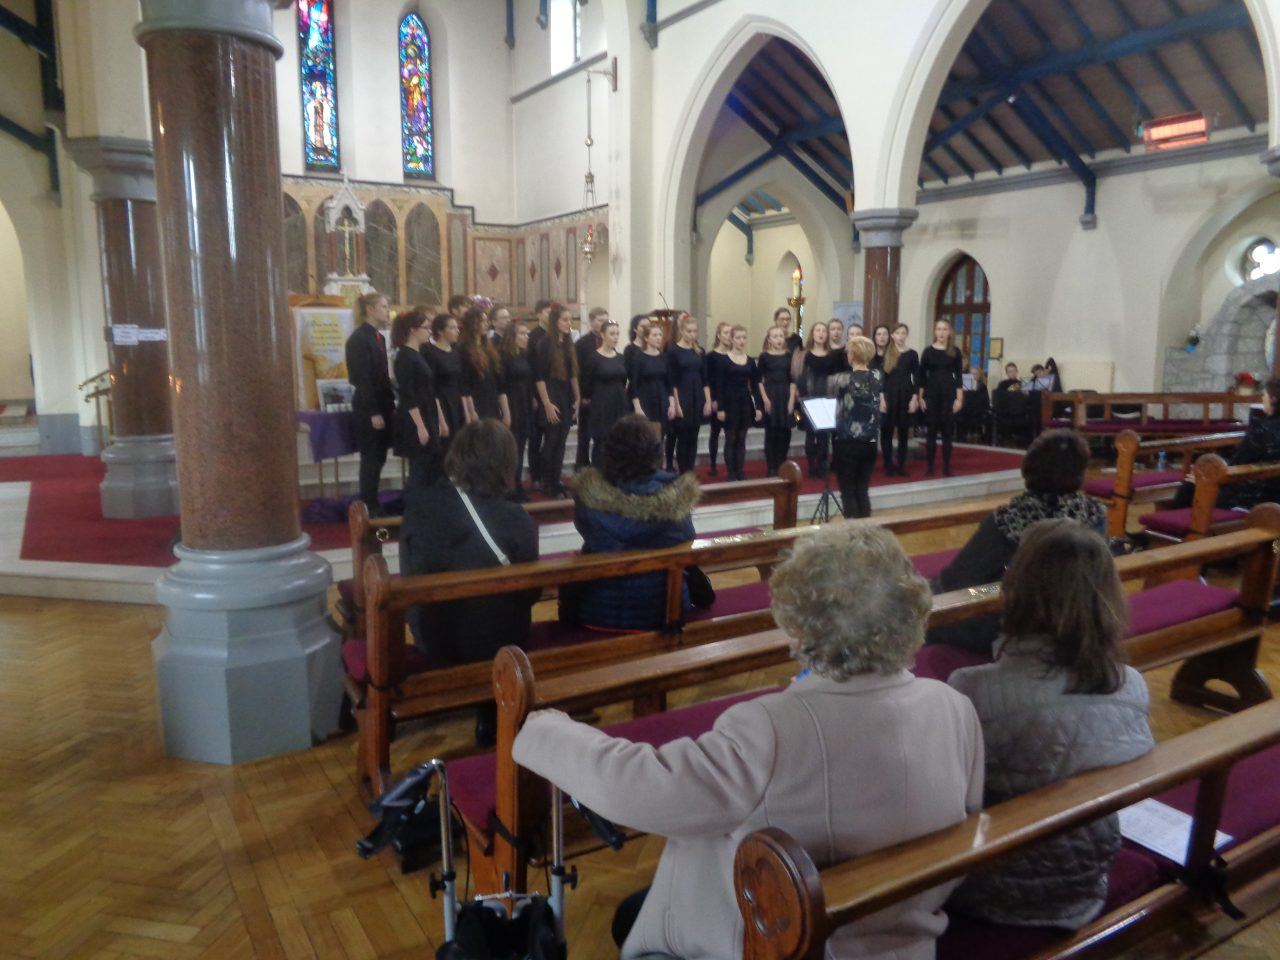 Choir from St Nicholas Catholic High School in Cheshire Giving a Recital